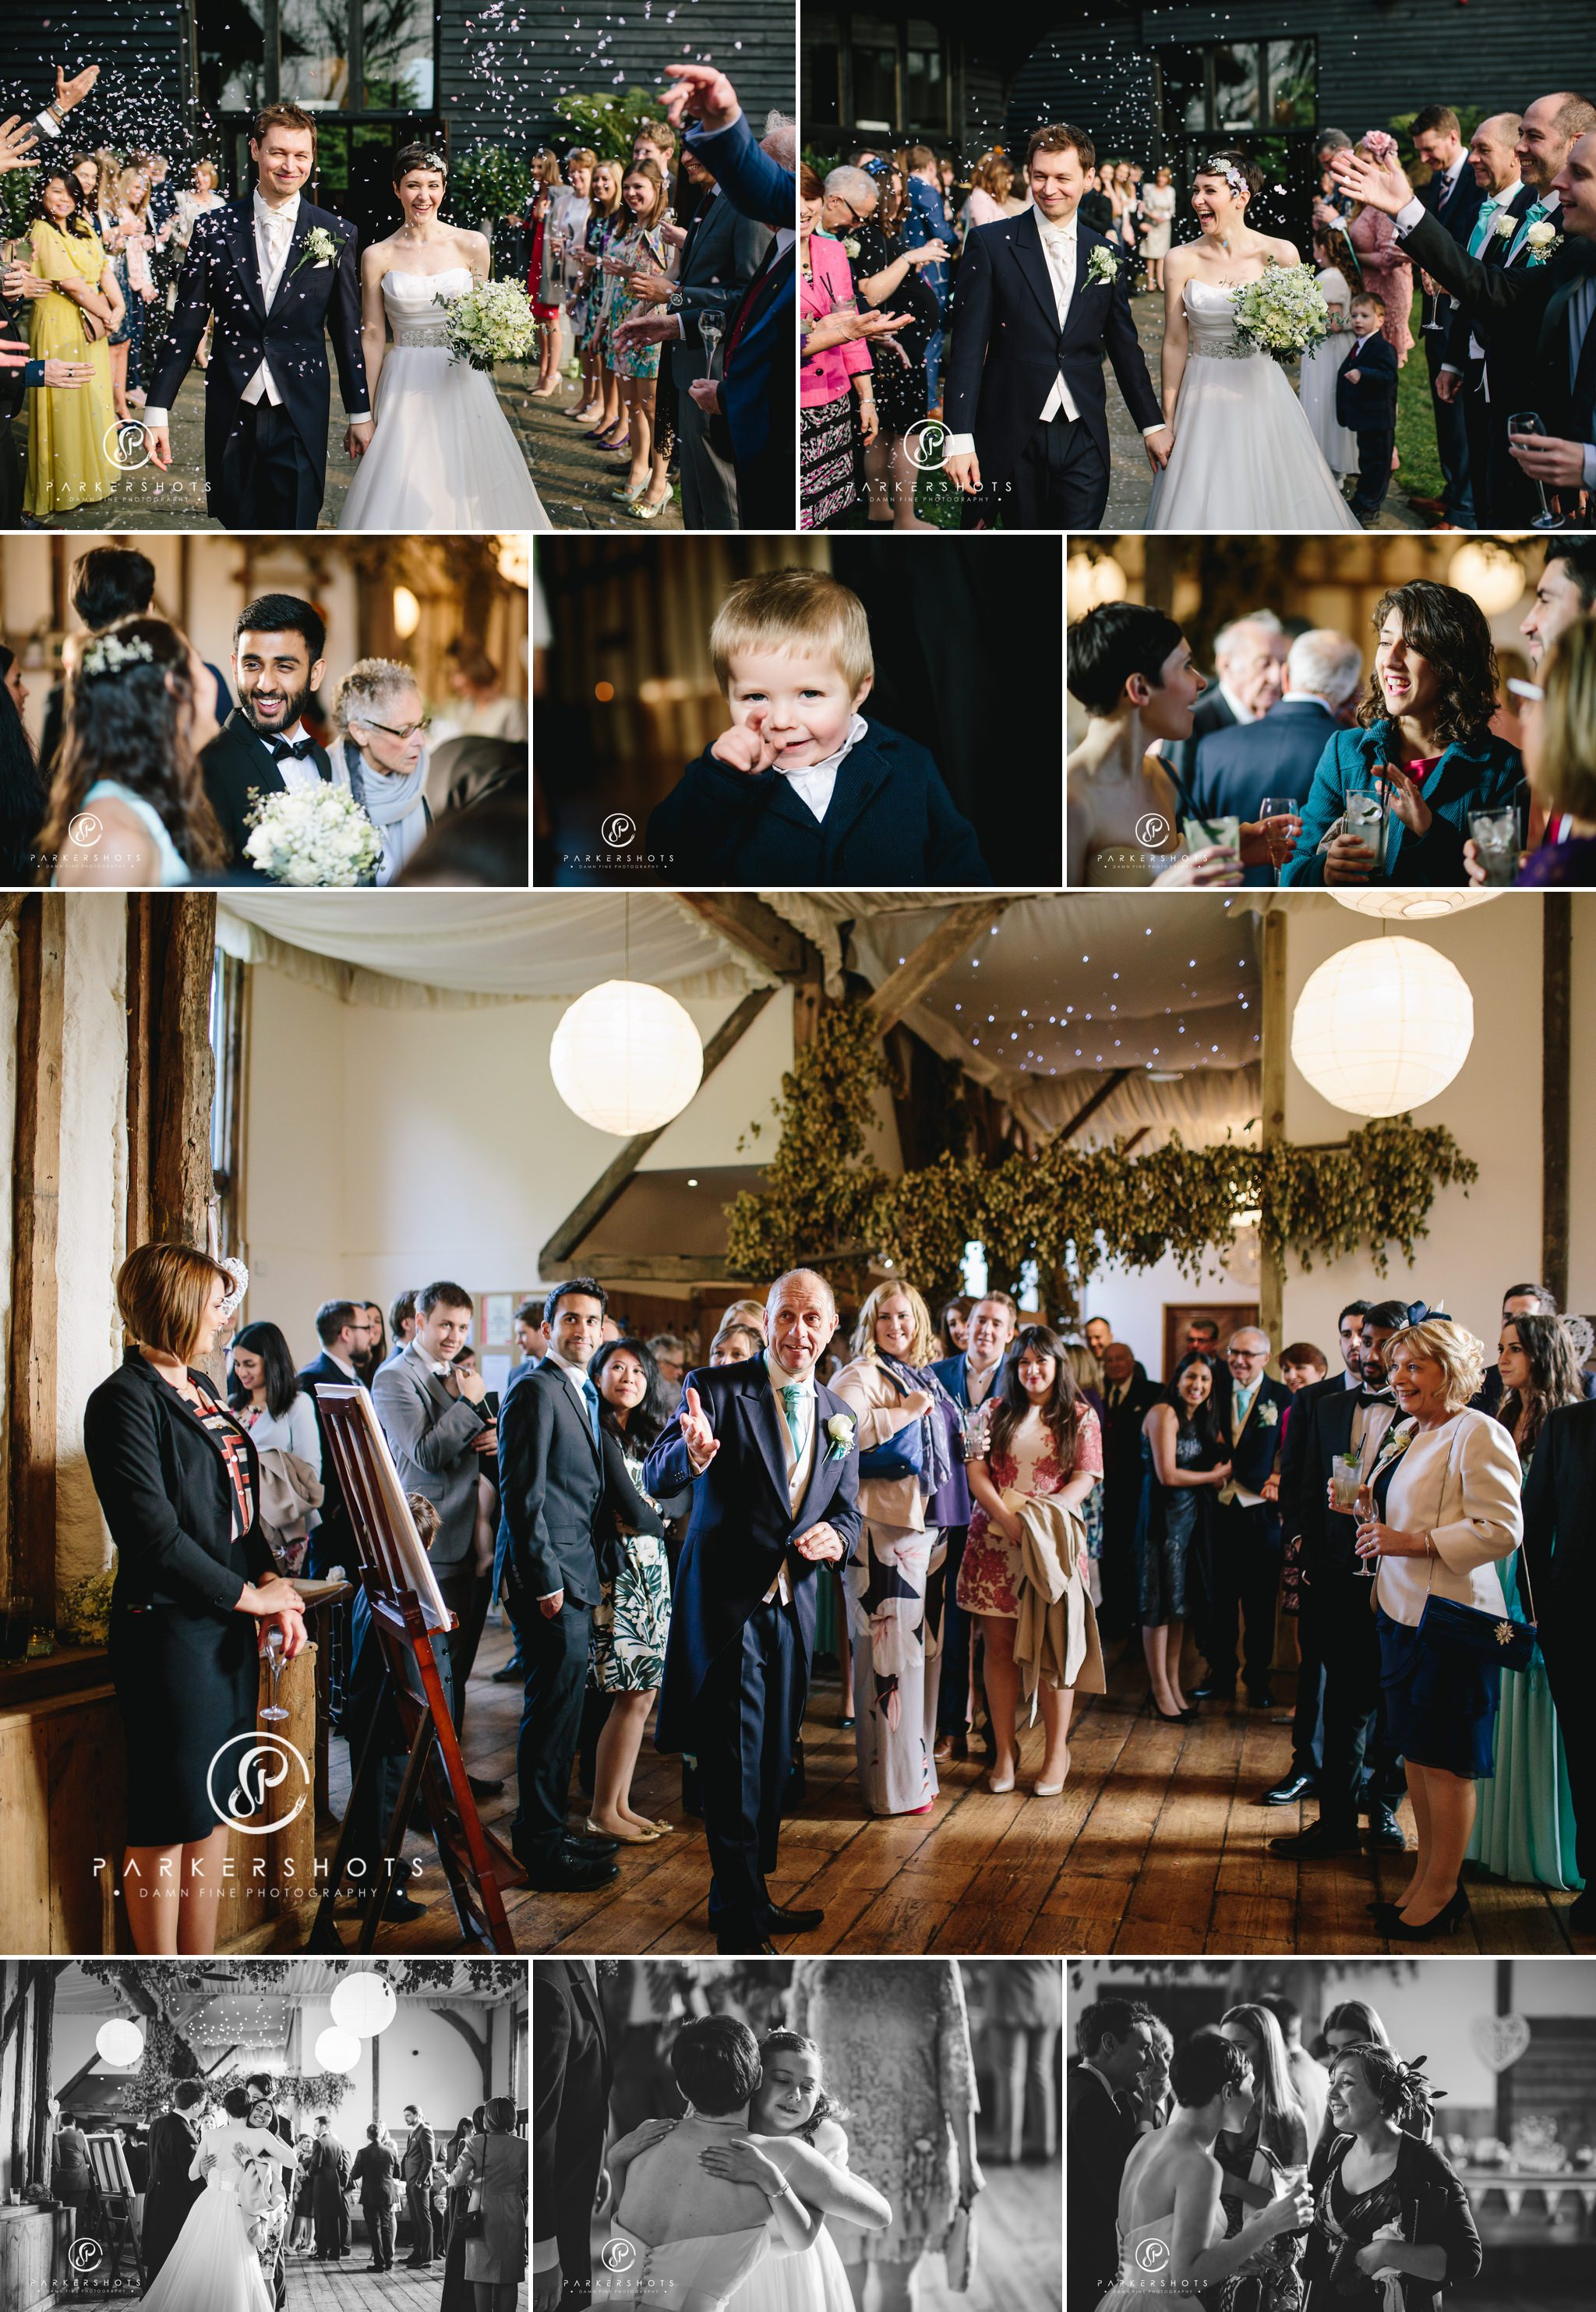 The wedding reception at Winters Barns